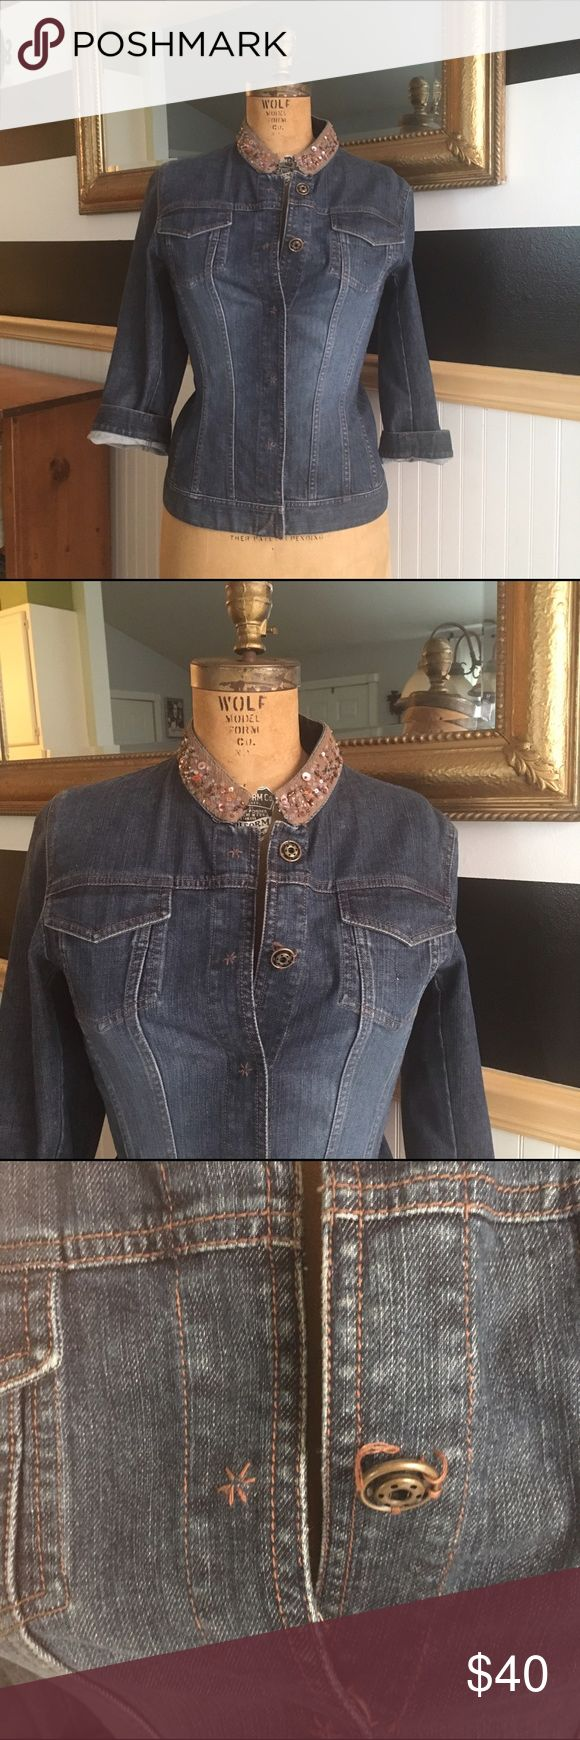 Banana Republic jean jacket, beaded/ sequin collar Jean jacket with high collar featuring beading and sequin detail. One button needs a stitch or two for repair Banana Republic Jackets & Coats Jean Jackets